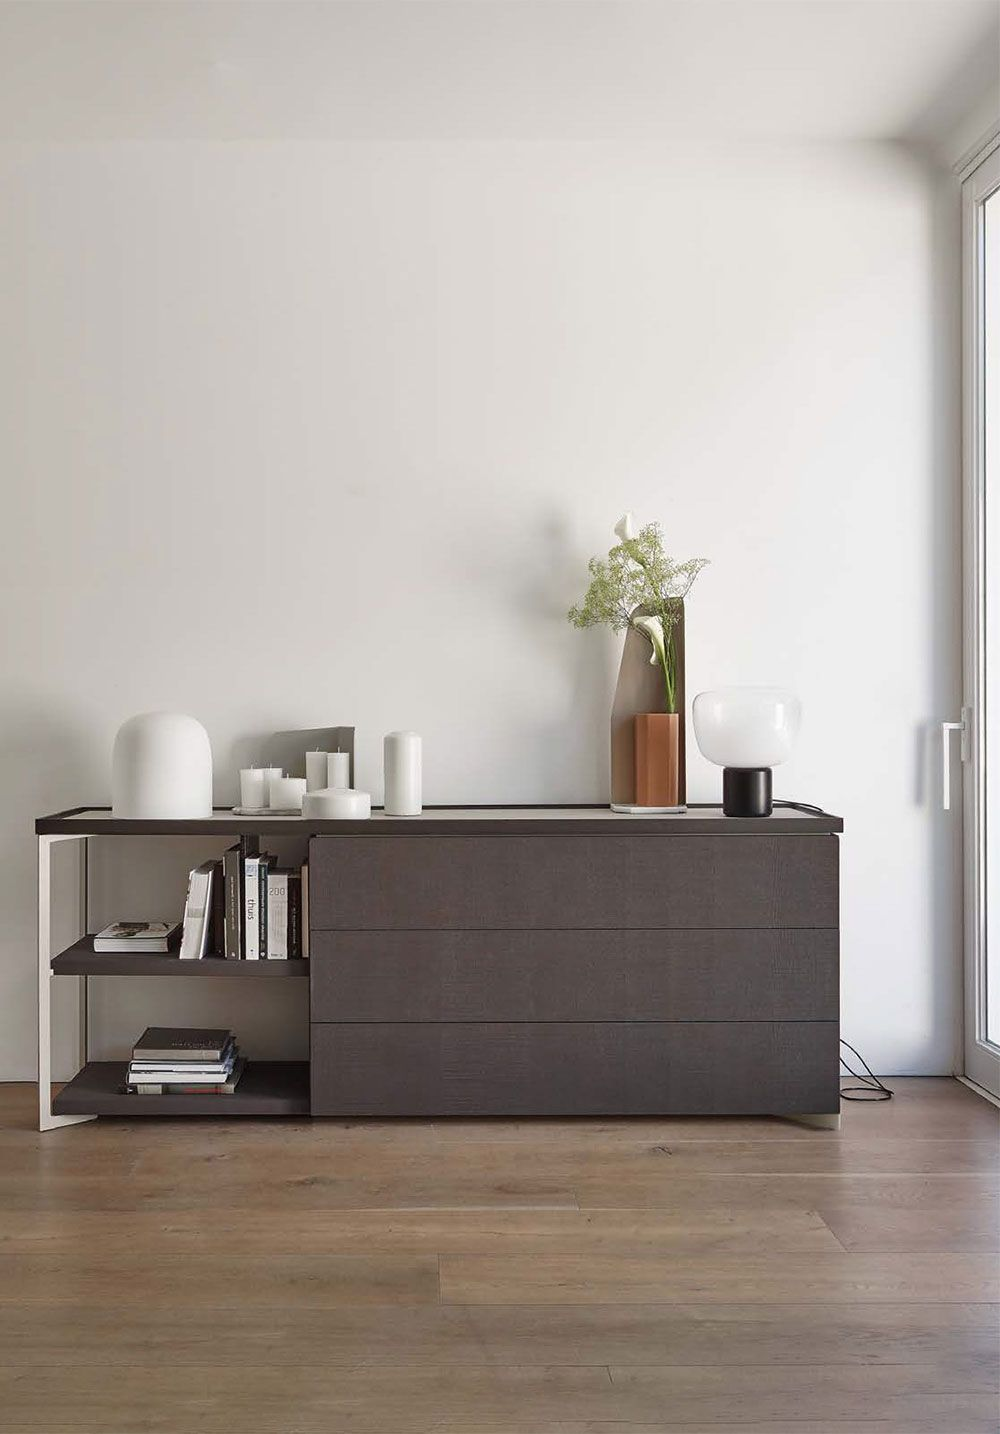 Console Ligne Roset Estampe Sideboard Designed By Noé Duchaufour Lawrance For Ligne